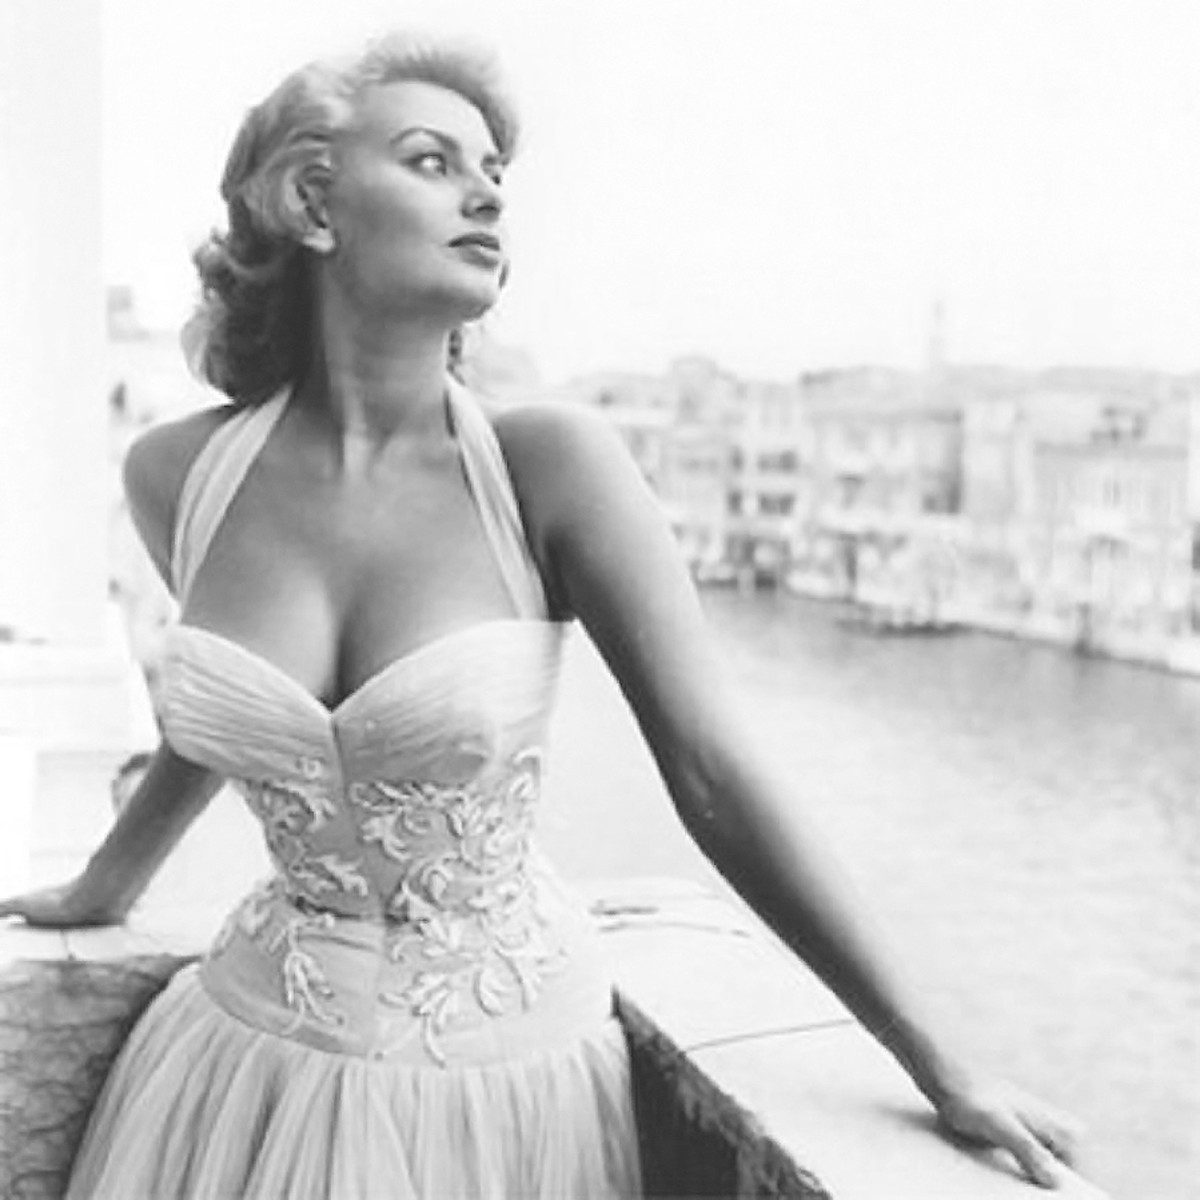 Gorgeous Sophia Loren and her enviable décolleté